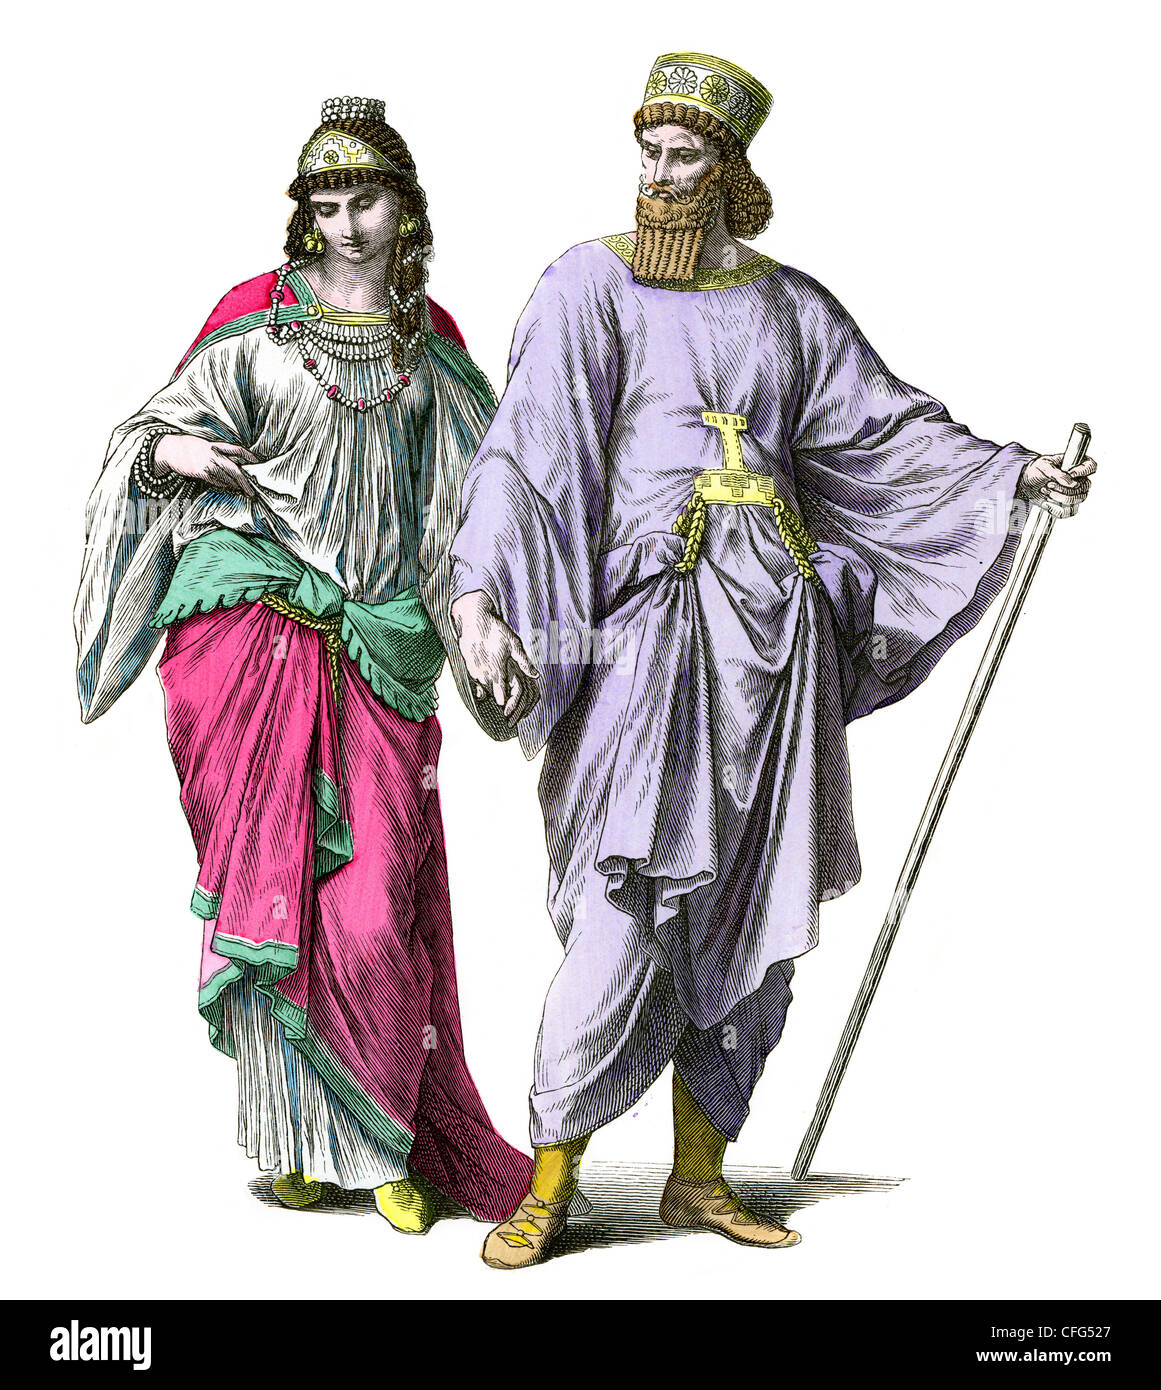 Ancient nobles of Meder or Persia - Stock Image